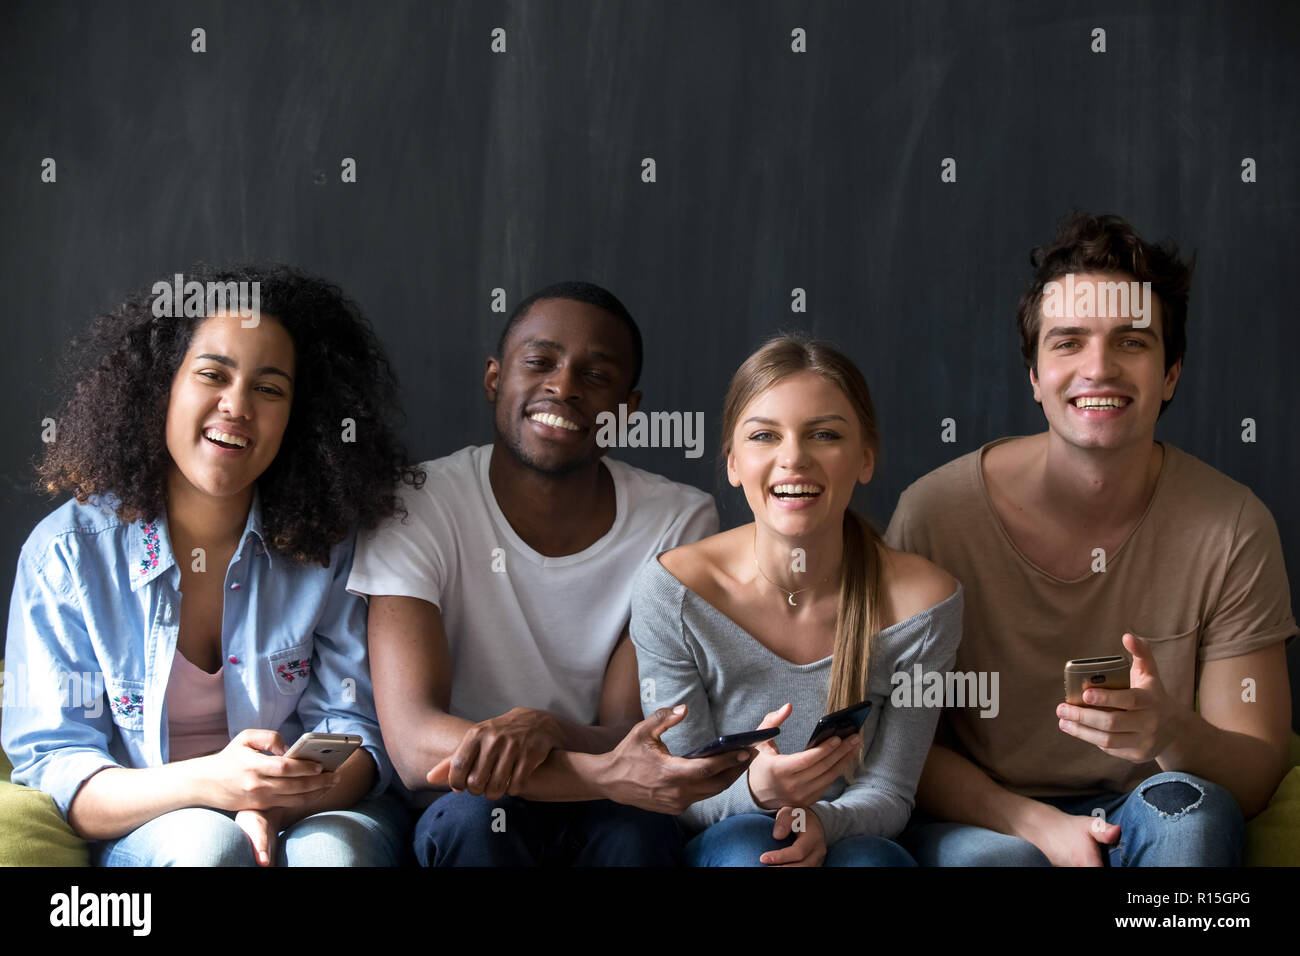 Happy diverse students multiracial friends sitting together indoor. Attractive smiling girls handsome guys holding mobile phones laughing looking at c - Stock Image